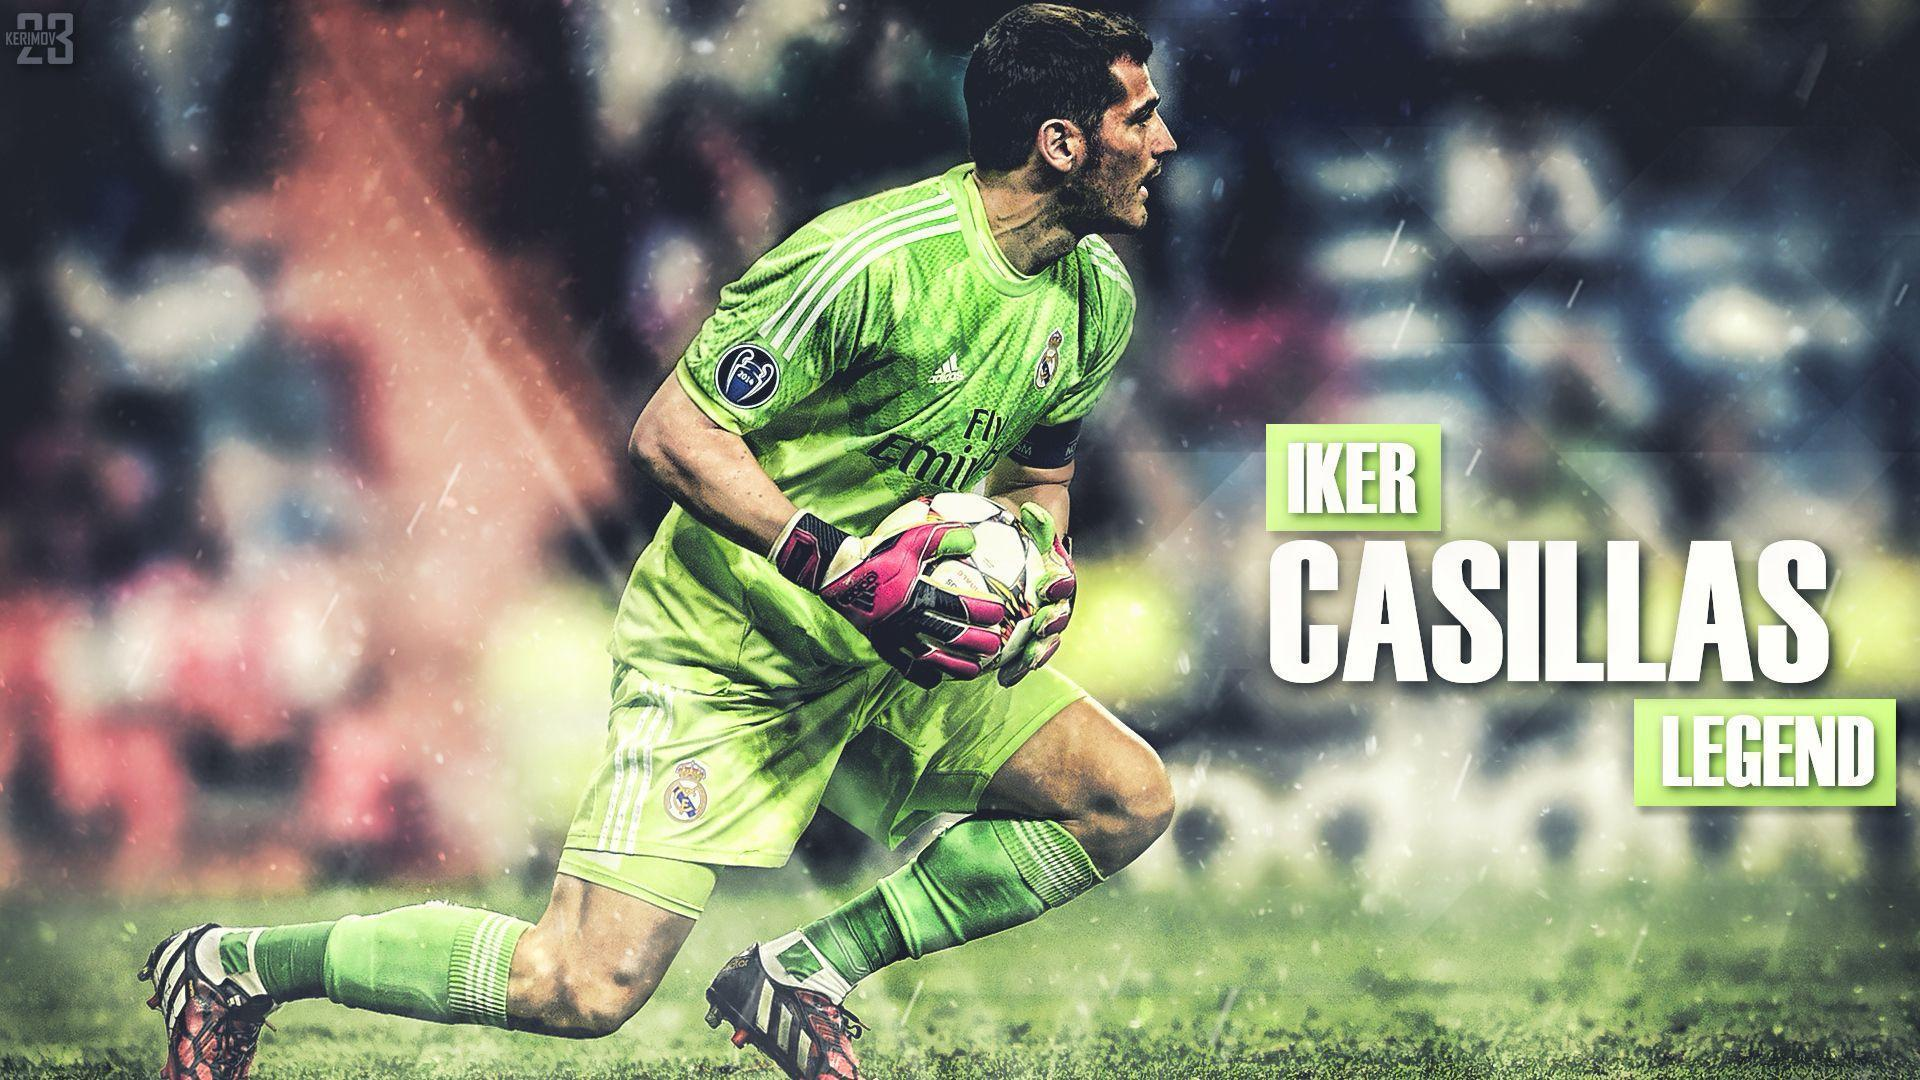 Iker Casillas HD Wallpapers